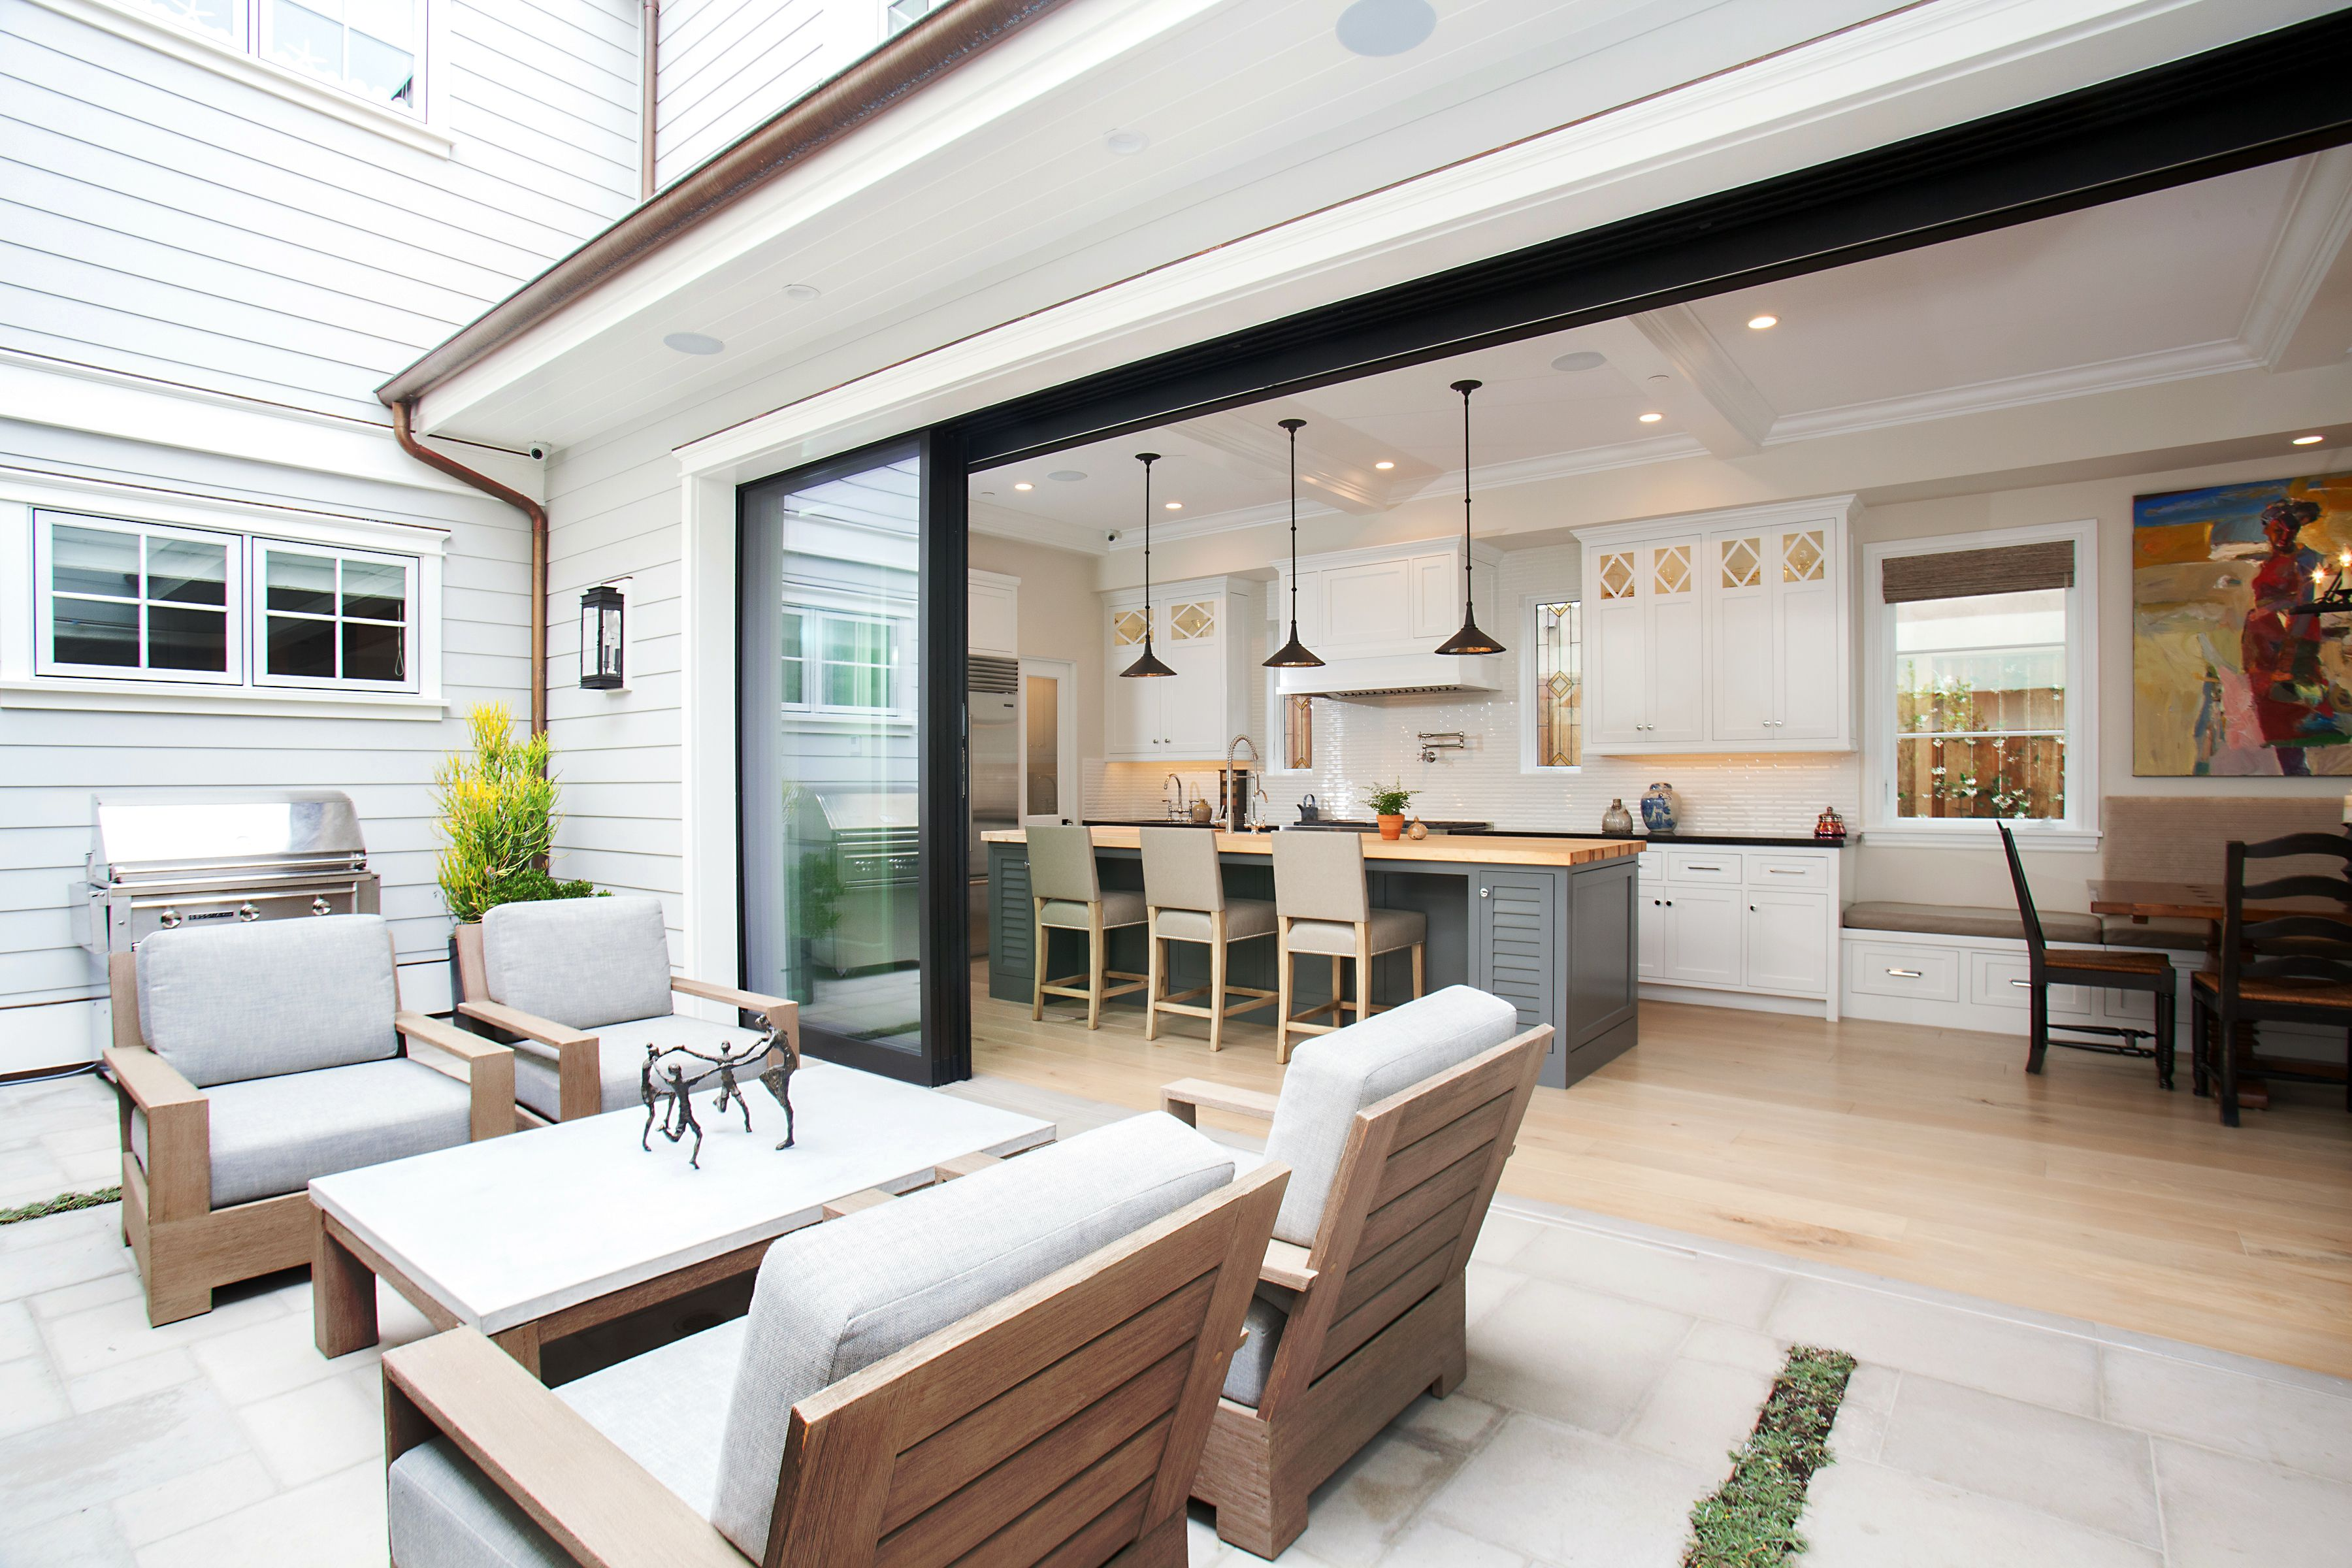 The Sliding Glass Doors Made By Western Windows And Doors Bring The